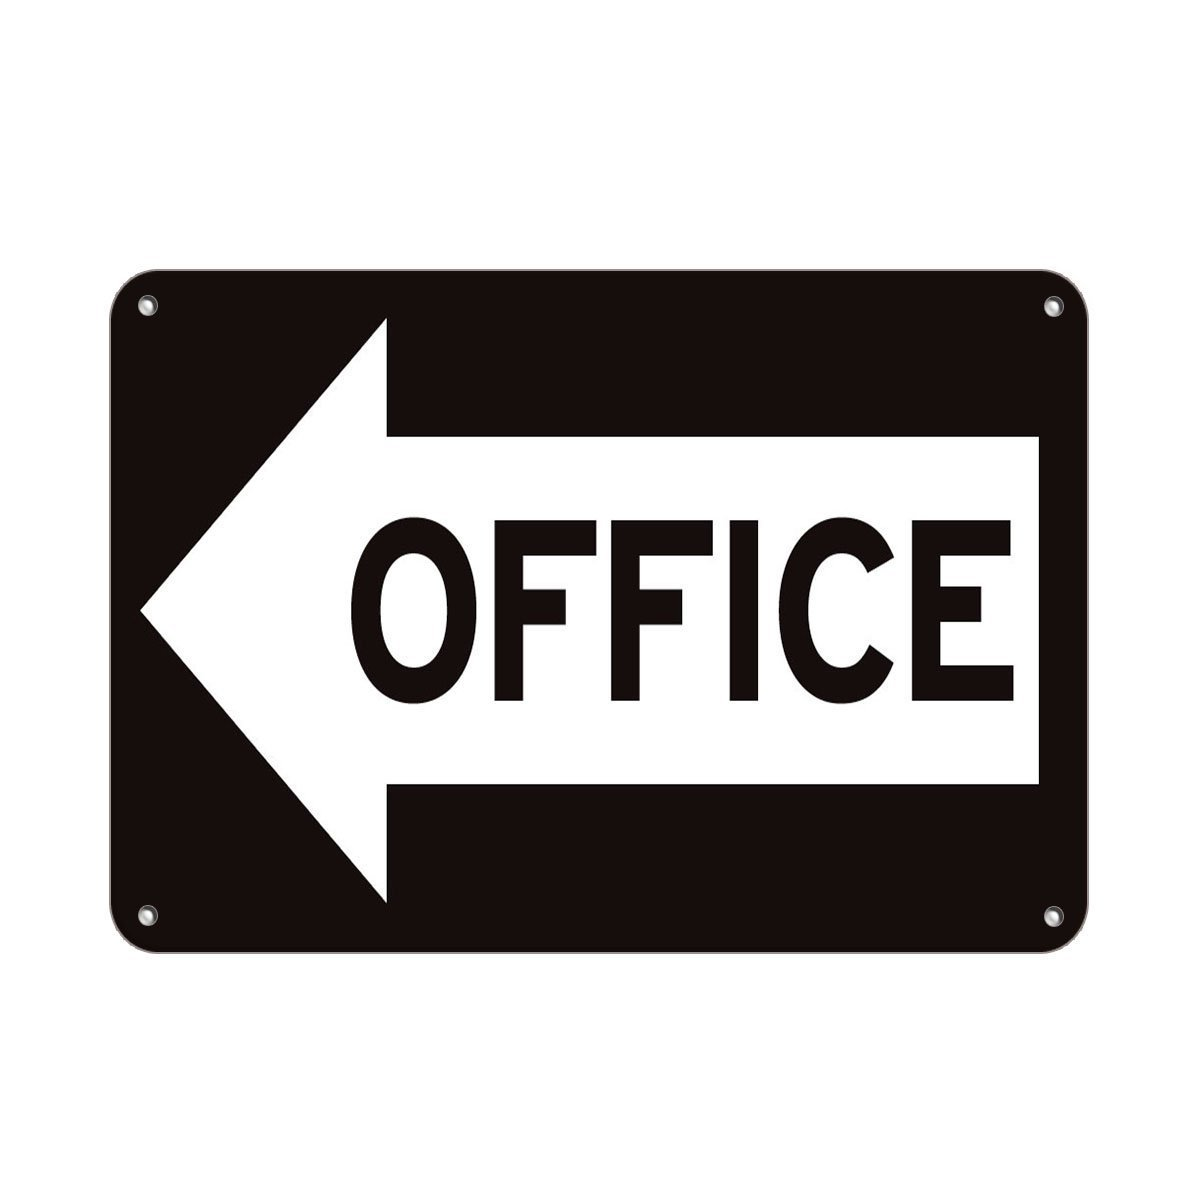 Personalized Metal Signs Office Left Arrow Business Sign Business Directional Sign Aluminum METAL Sign 8 X 12 Inch